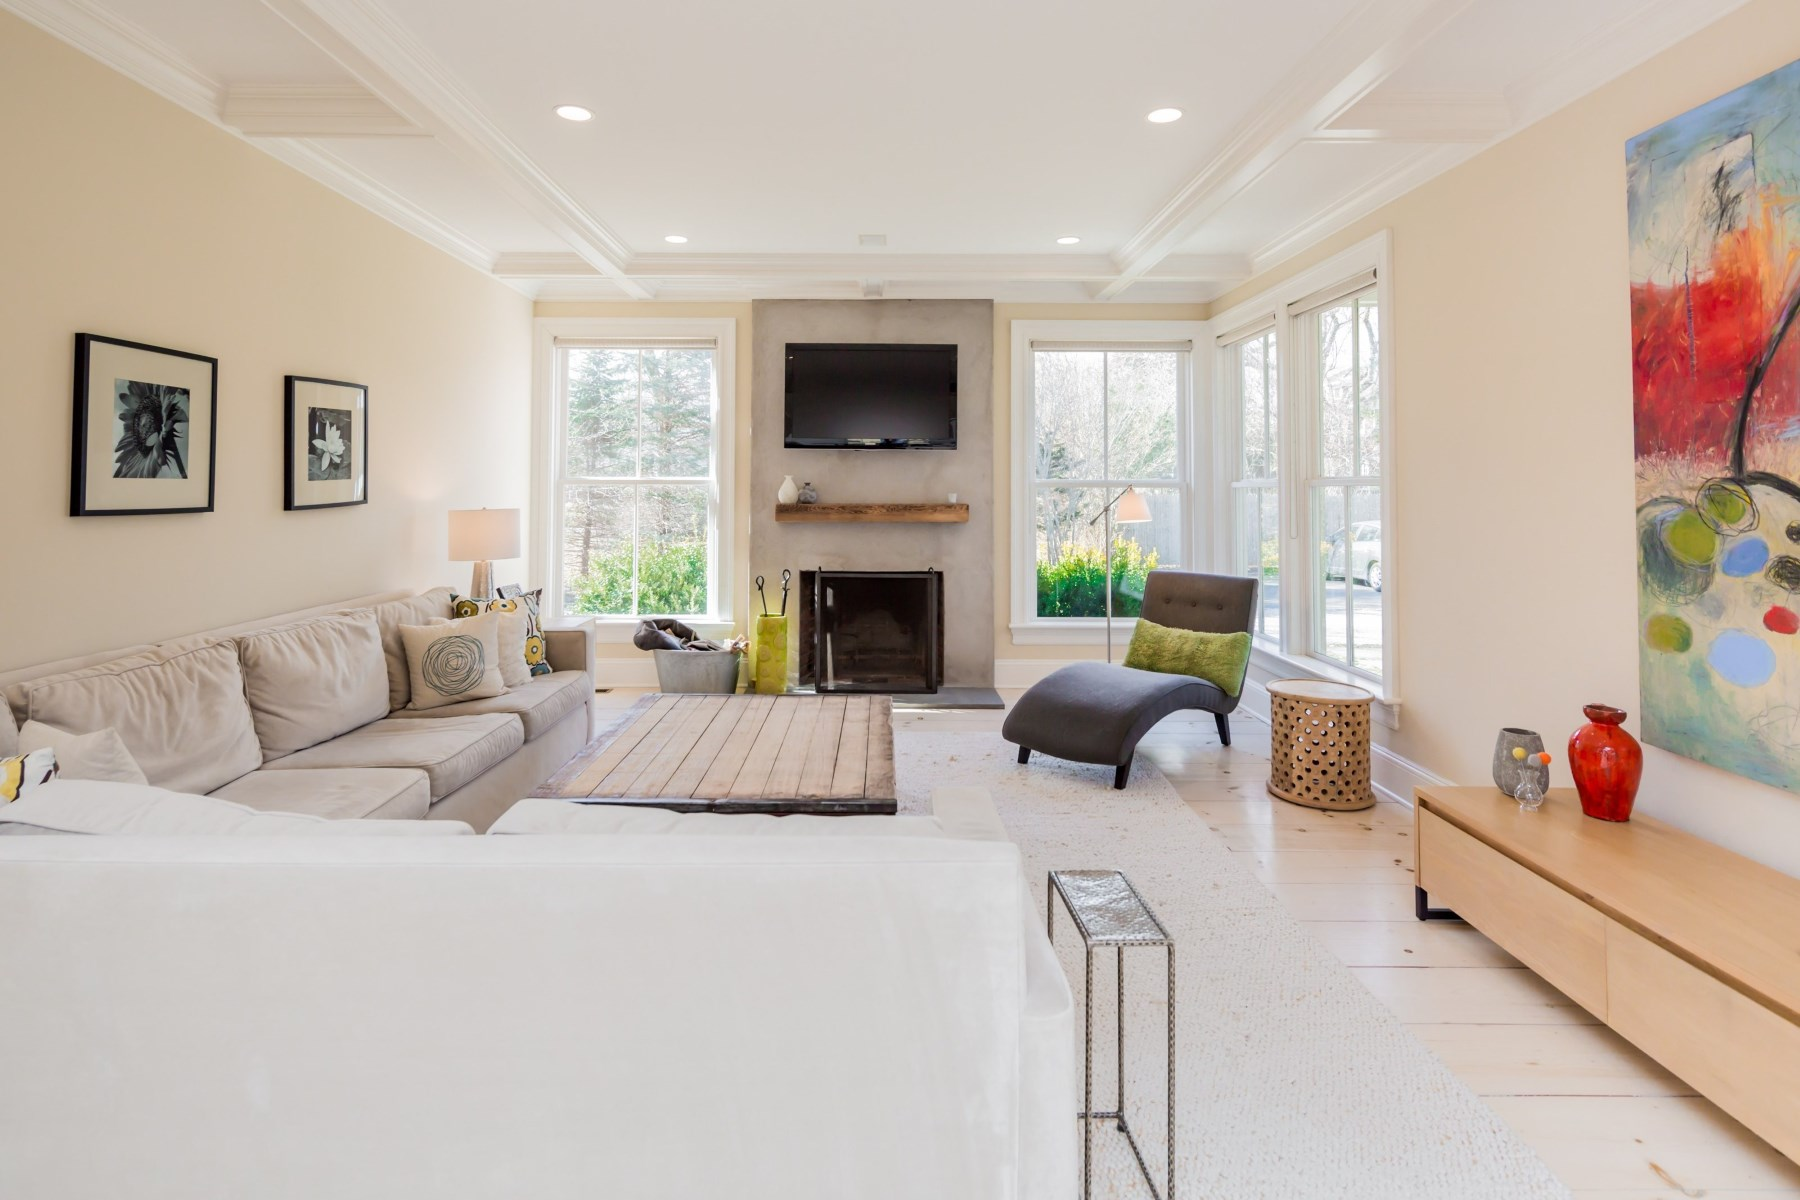 Additional photo for property listing at Reduced Sag Harbor Perfectly Renovated 4 First Street Sag Harbor, New York 11963 United States